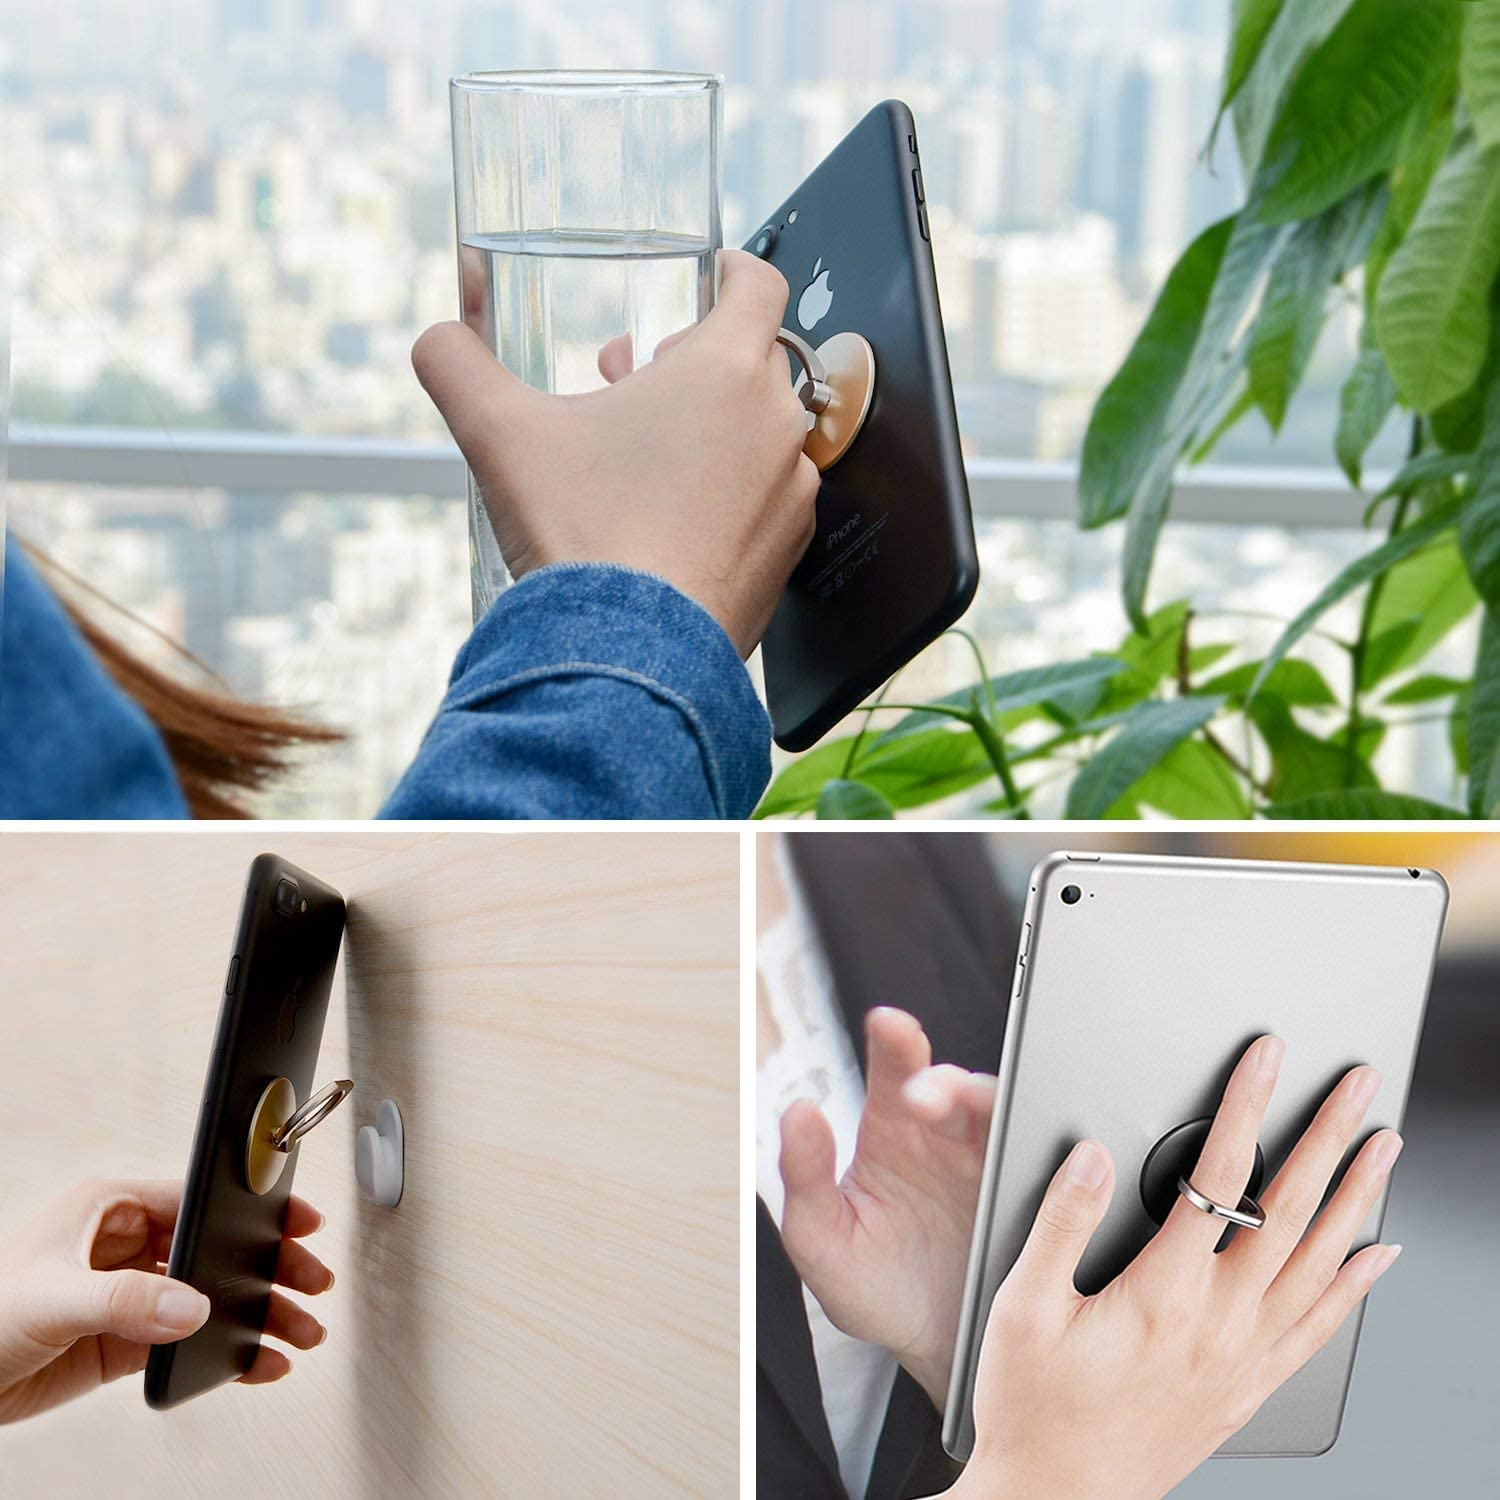 Cell Phone Finger Kickstand Loop Mount Stent 360 Degree Rotary Safe Hand Grip Compatible All iPhones Samsung Galaxy Android Pad Tablet Black